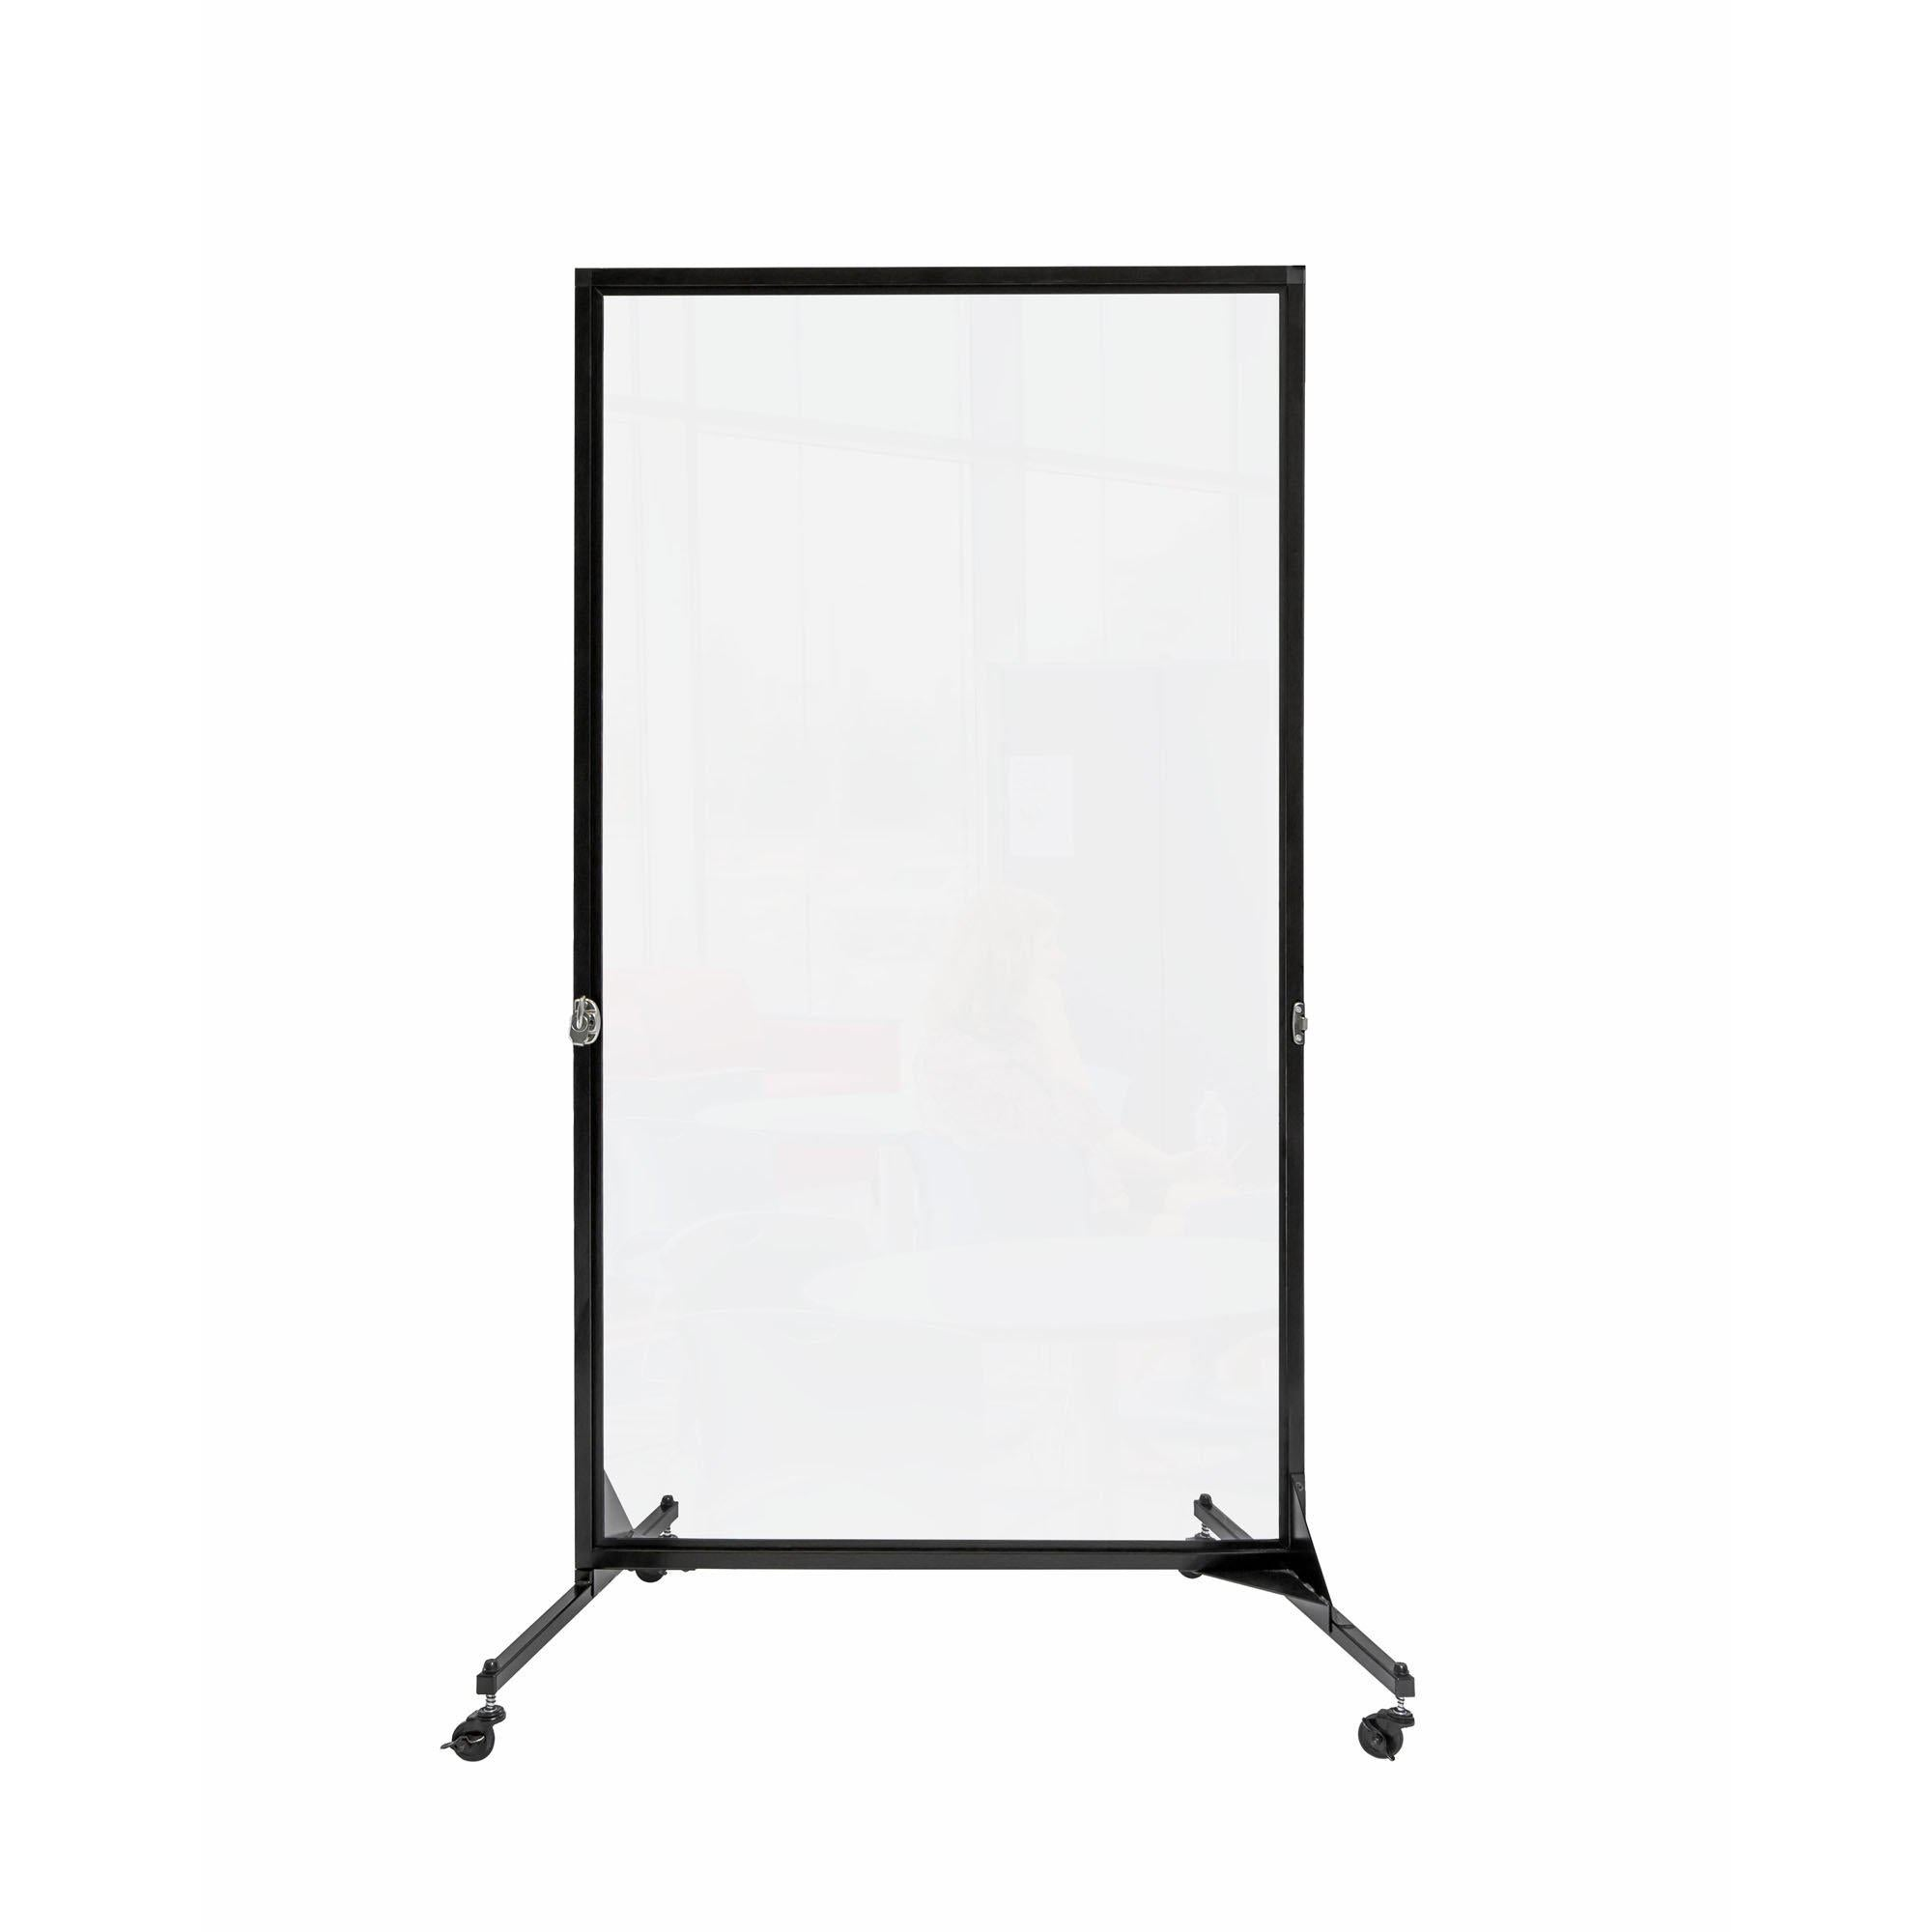 "Screenflex Clear Room Divider-Partitions & Display Panels-1 (3' 4"" L)-"